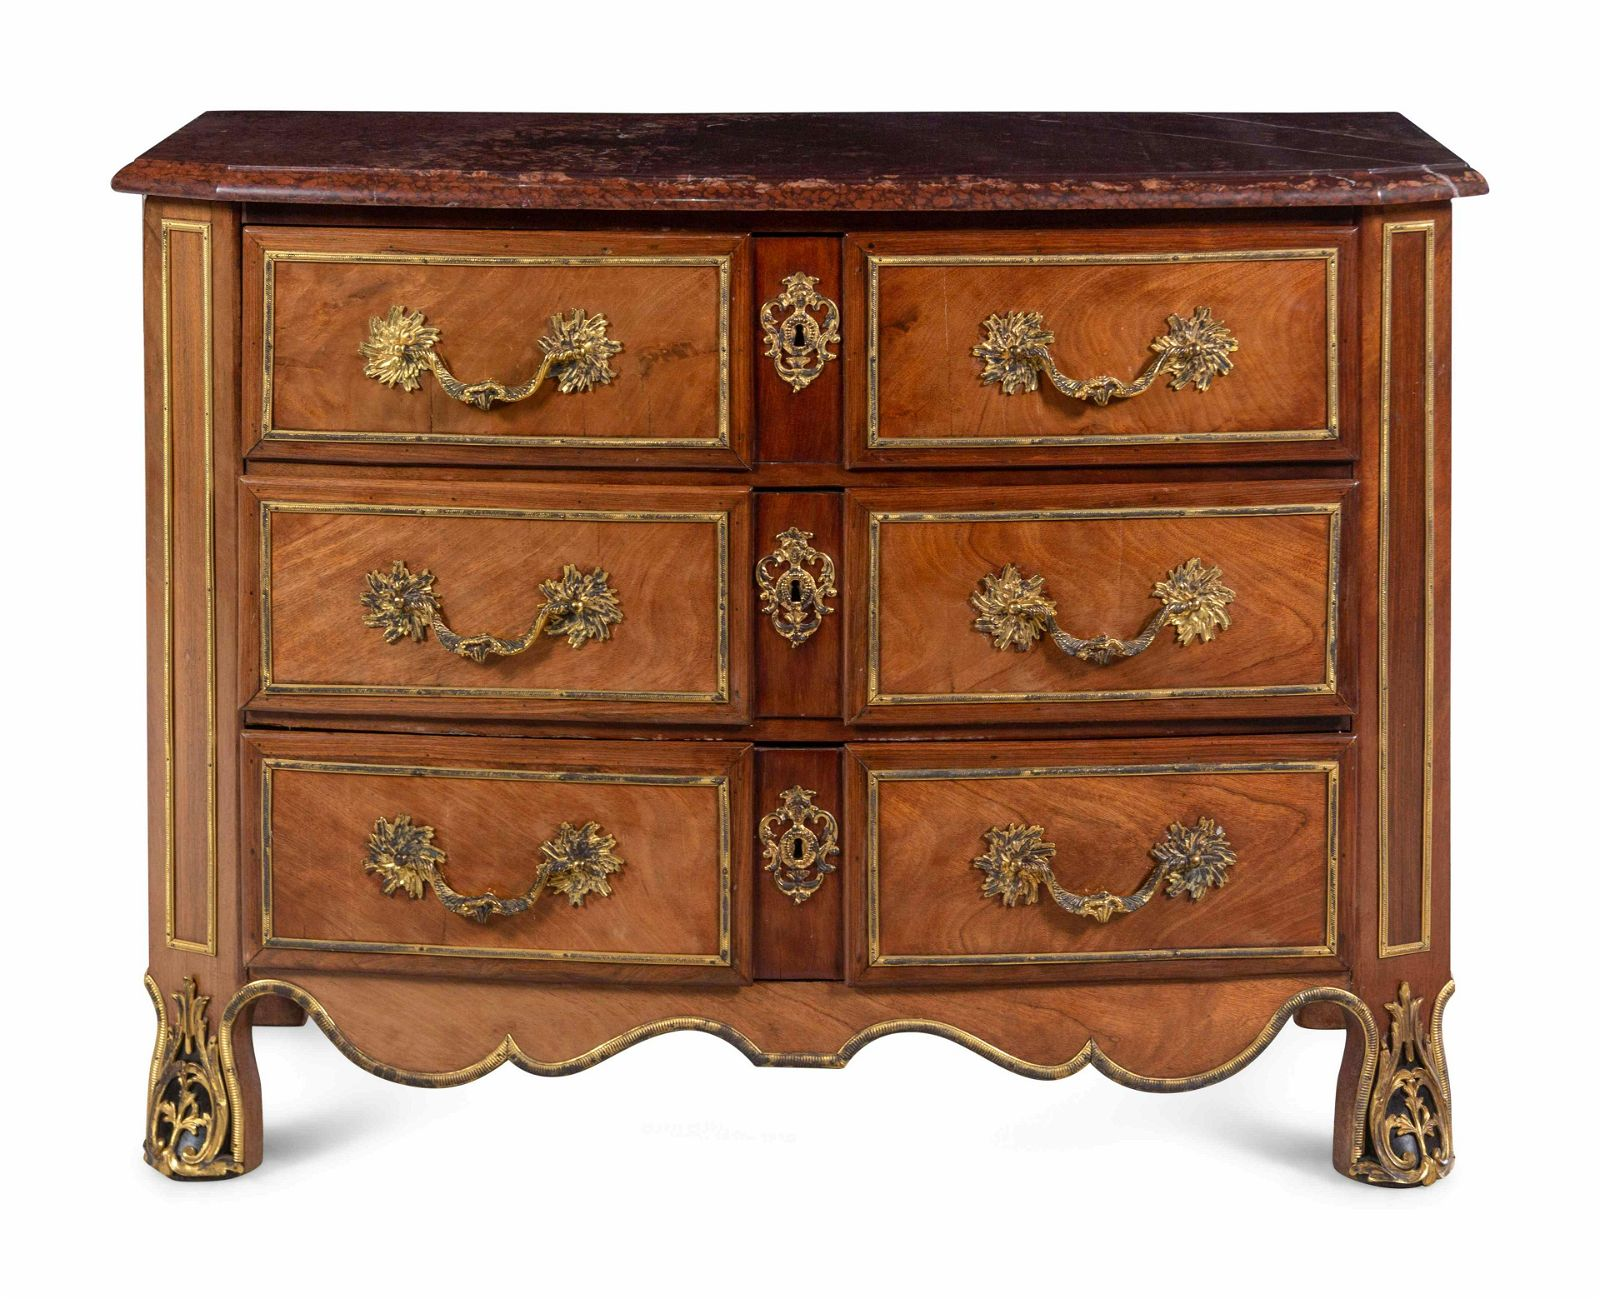 A Continental Gilt Bronze Mounted Mahogany Marble-Top